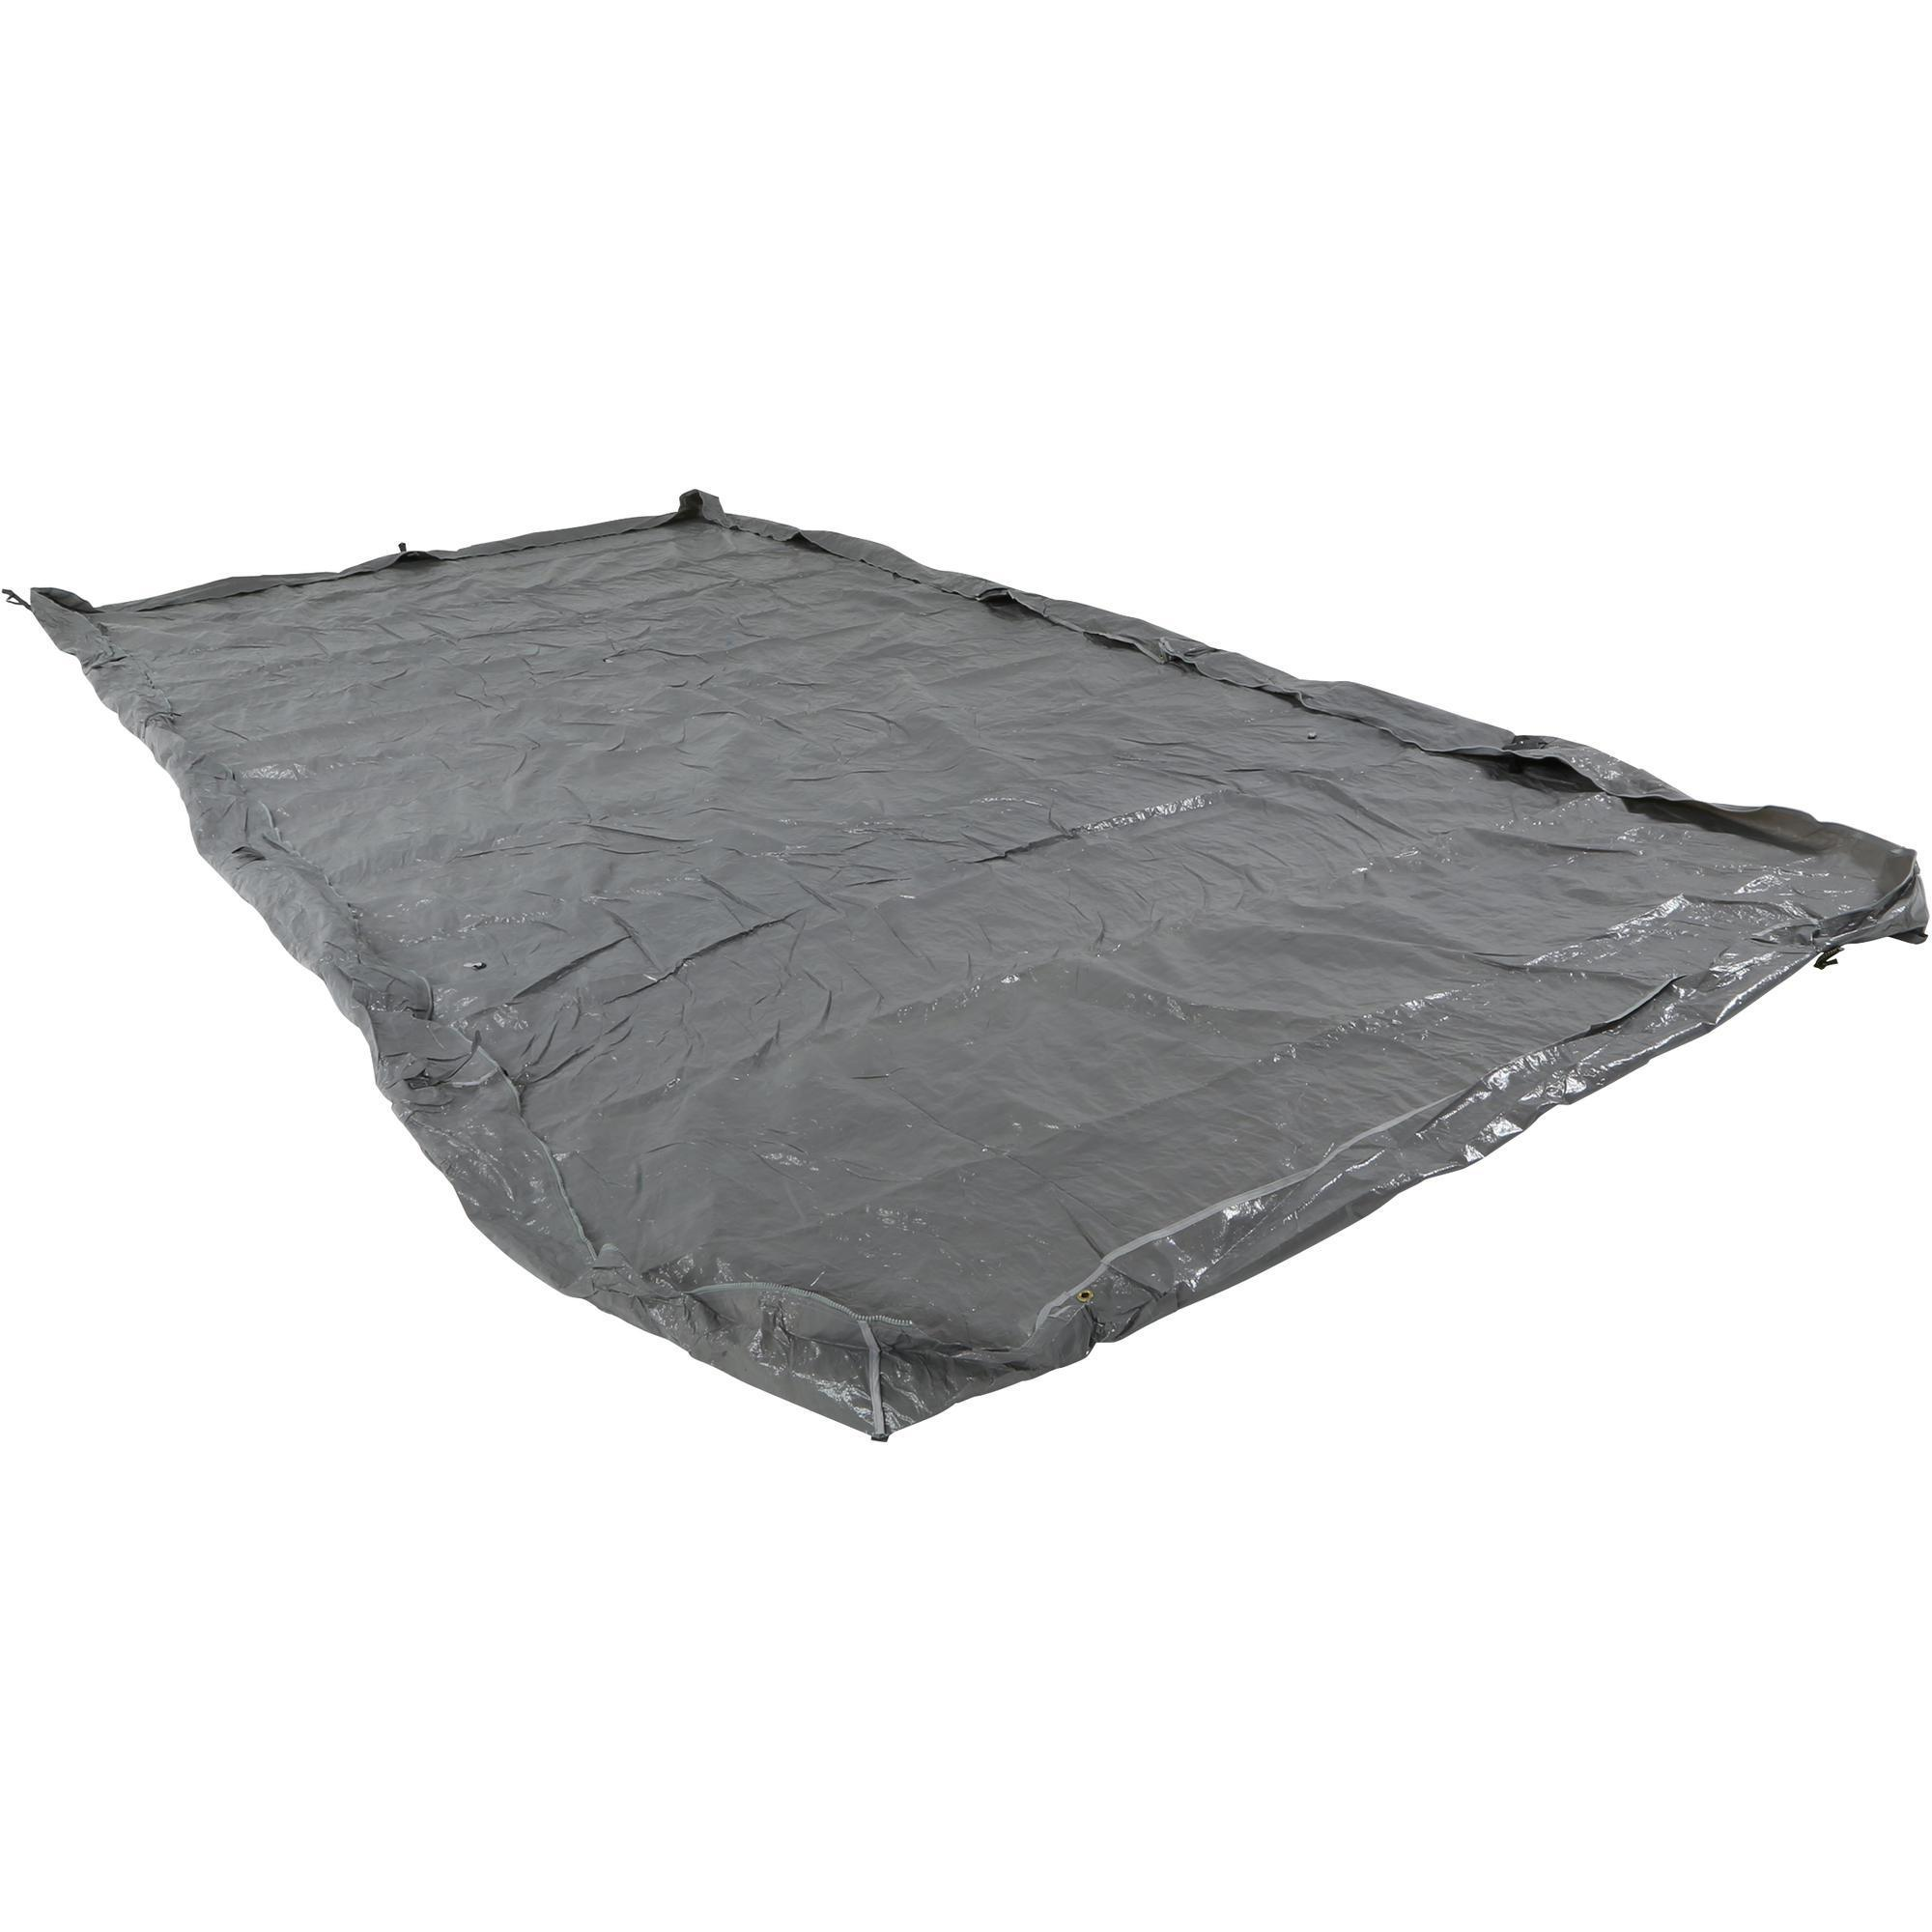 TAPIS DE SOL POUR TENTE AIR SECONDS FAMILY 10.10 XL QUECHUA